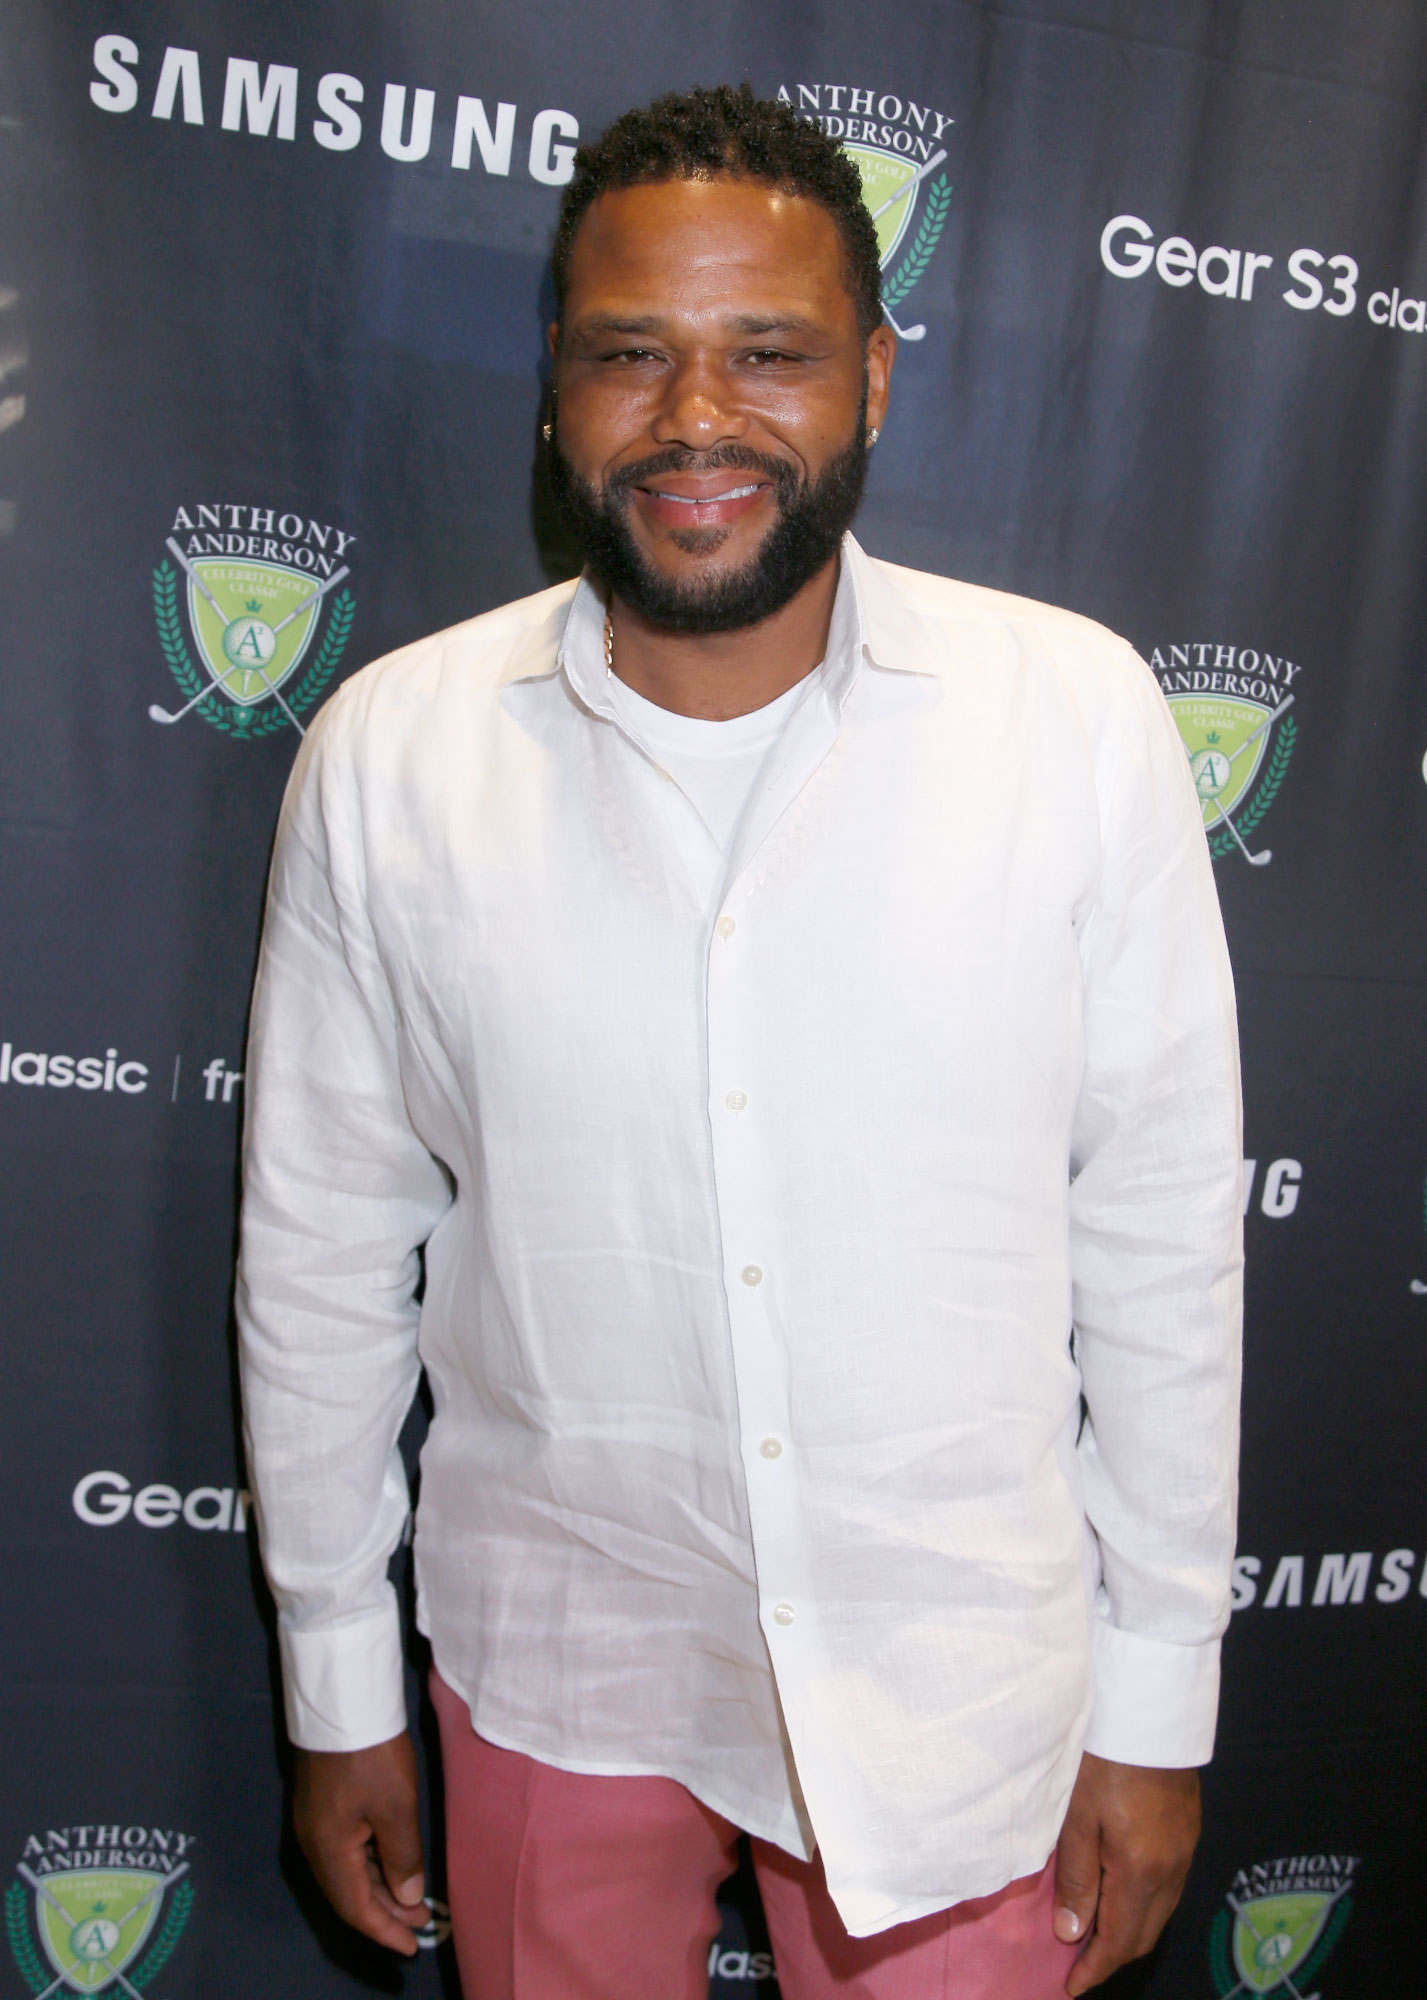 SAMSUNG Presents Anthony Anderson 2nd Annual Celebrity Golf Clas